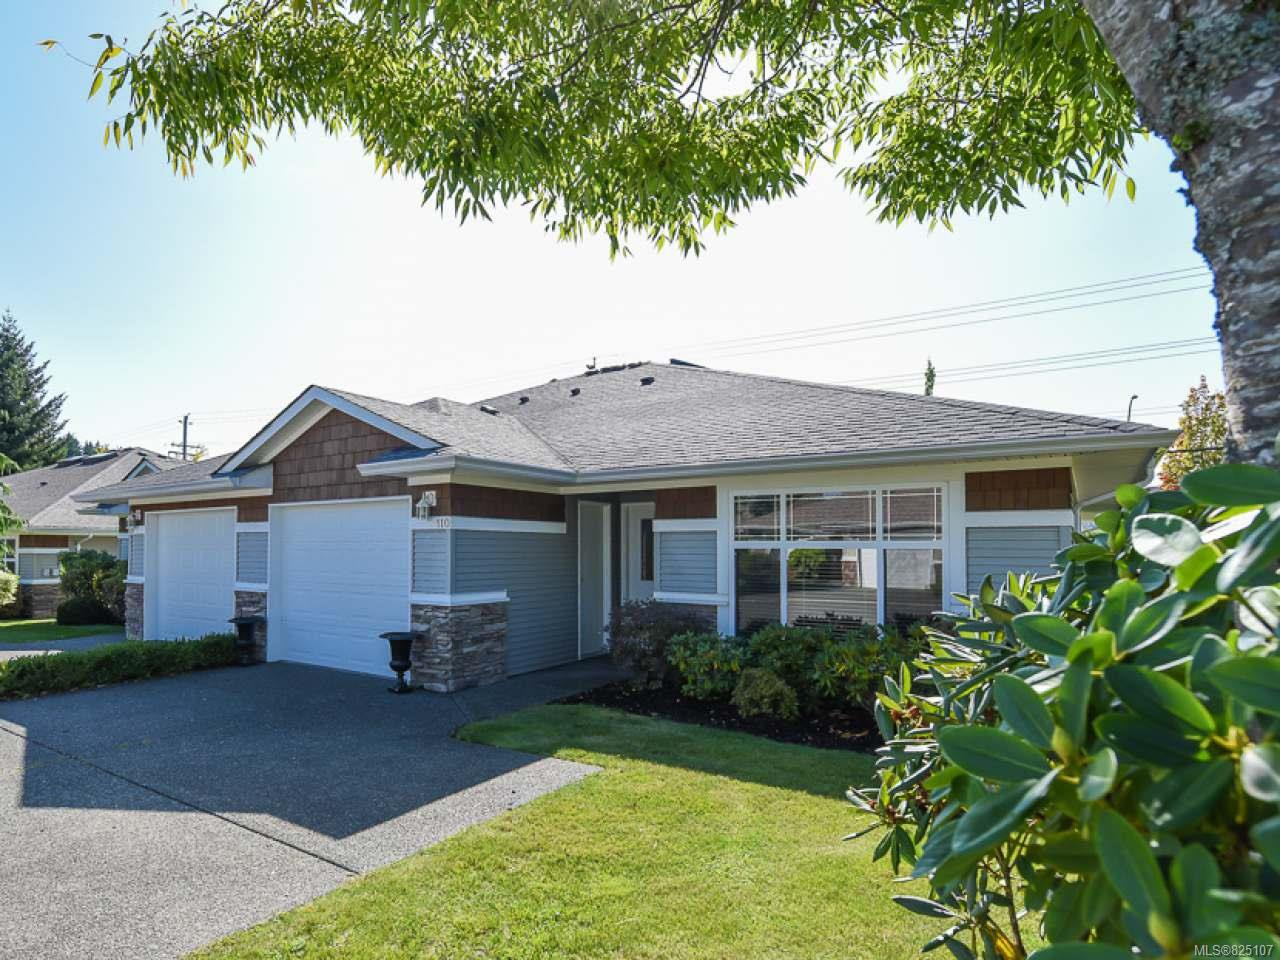 Main Photo: 110 2077 St Andrews Way in COURTENAY: CV Courtenay East Row/Townhouse for sale (Comox Valley)  : MLS®# 825107